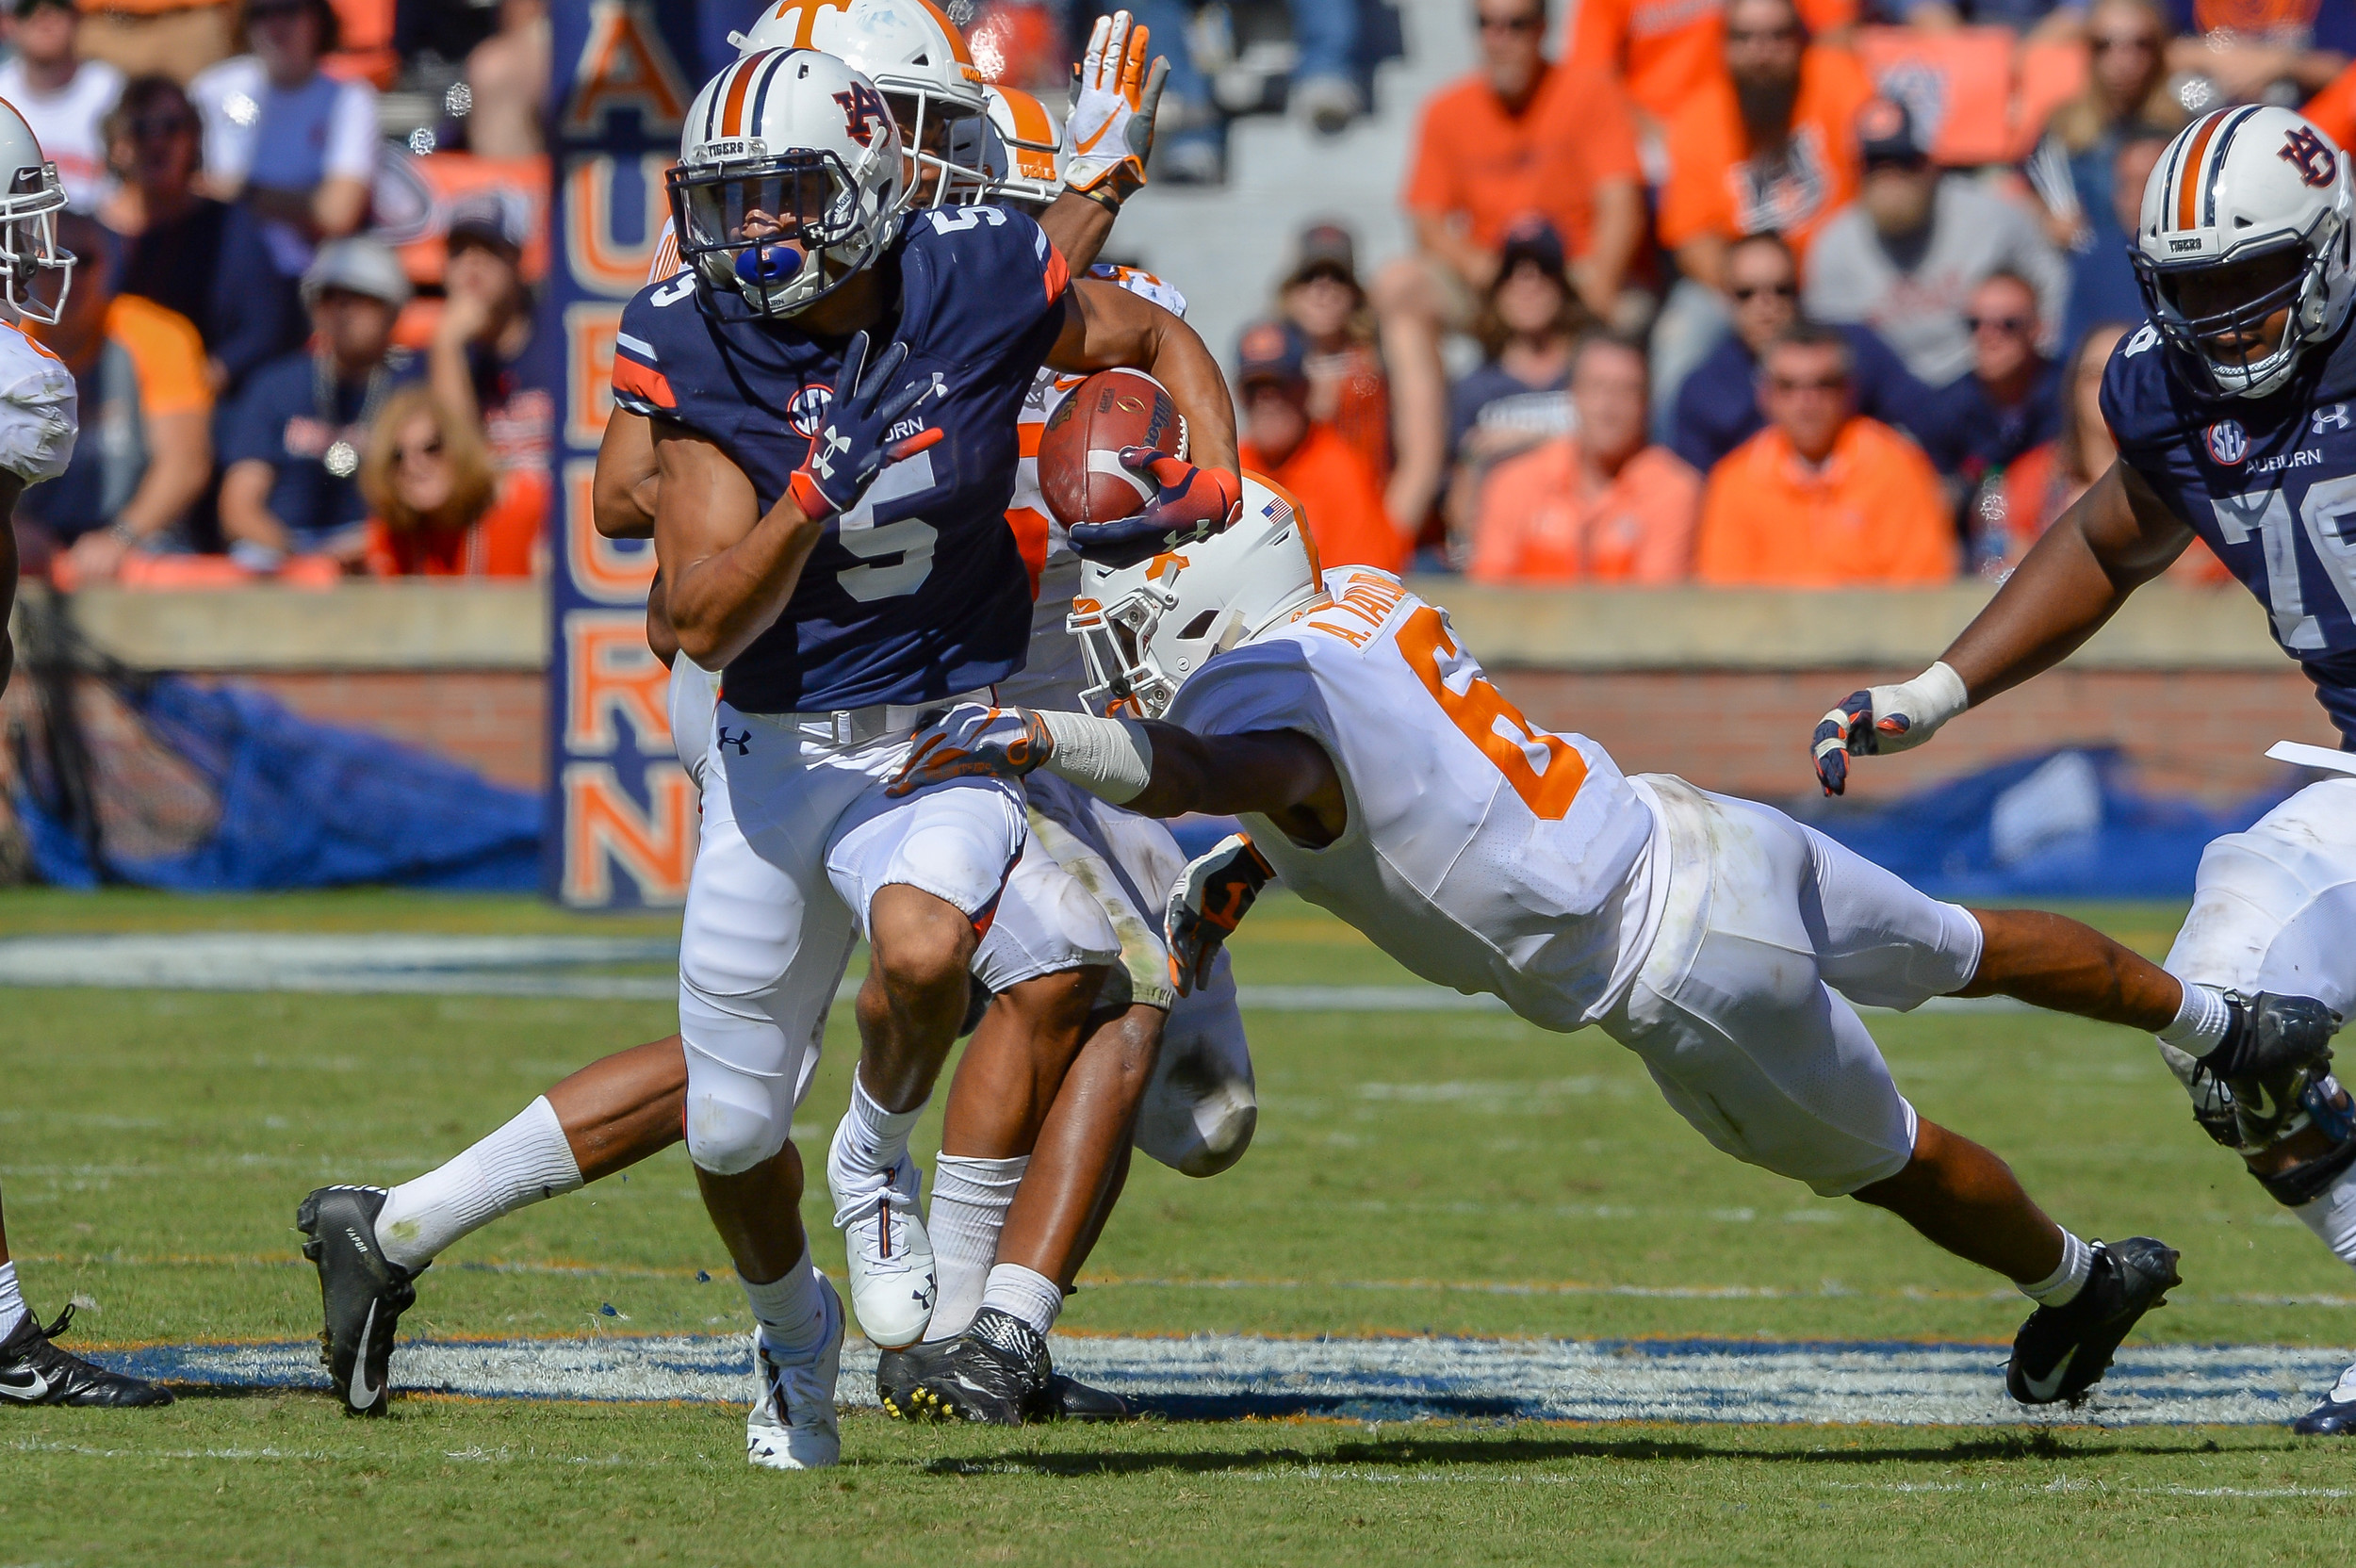 Auburn Tigers wide receiver Anthony Schwartz (5) runs past Tennessee Volunteers defensive back Alontae Taylor (6) during the second half of Saturday's game, at Jordan-Hare Stadium in Auburn, AL. Daily Mountain Eagle -  Jeff Johnsey